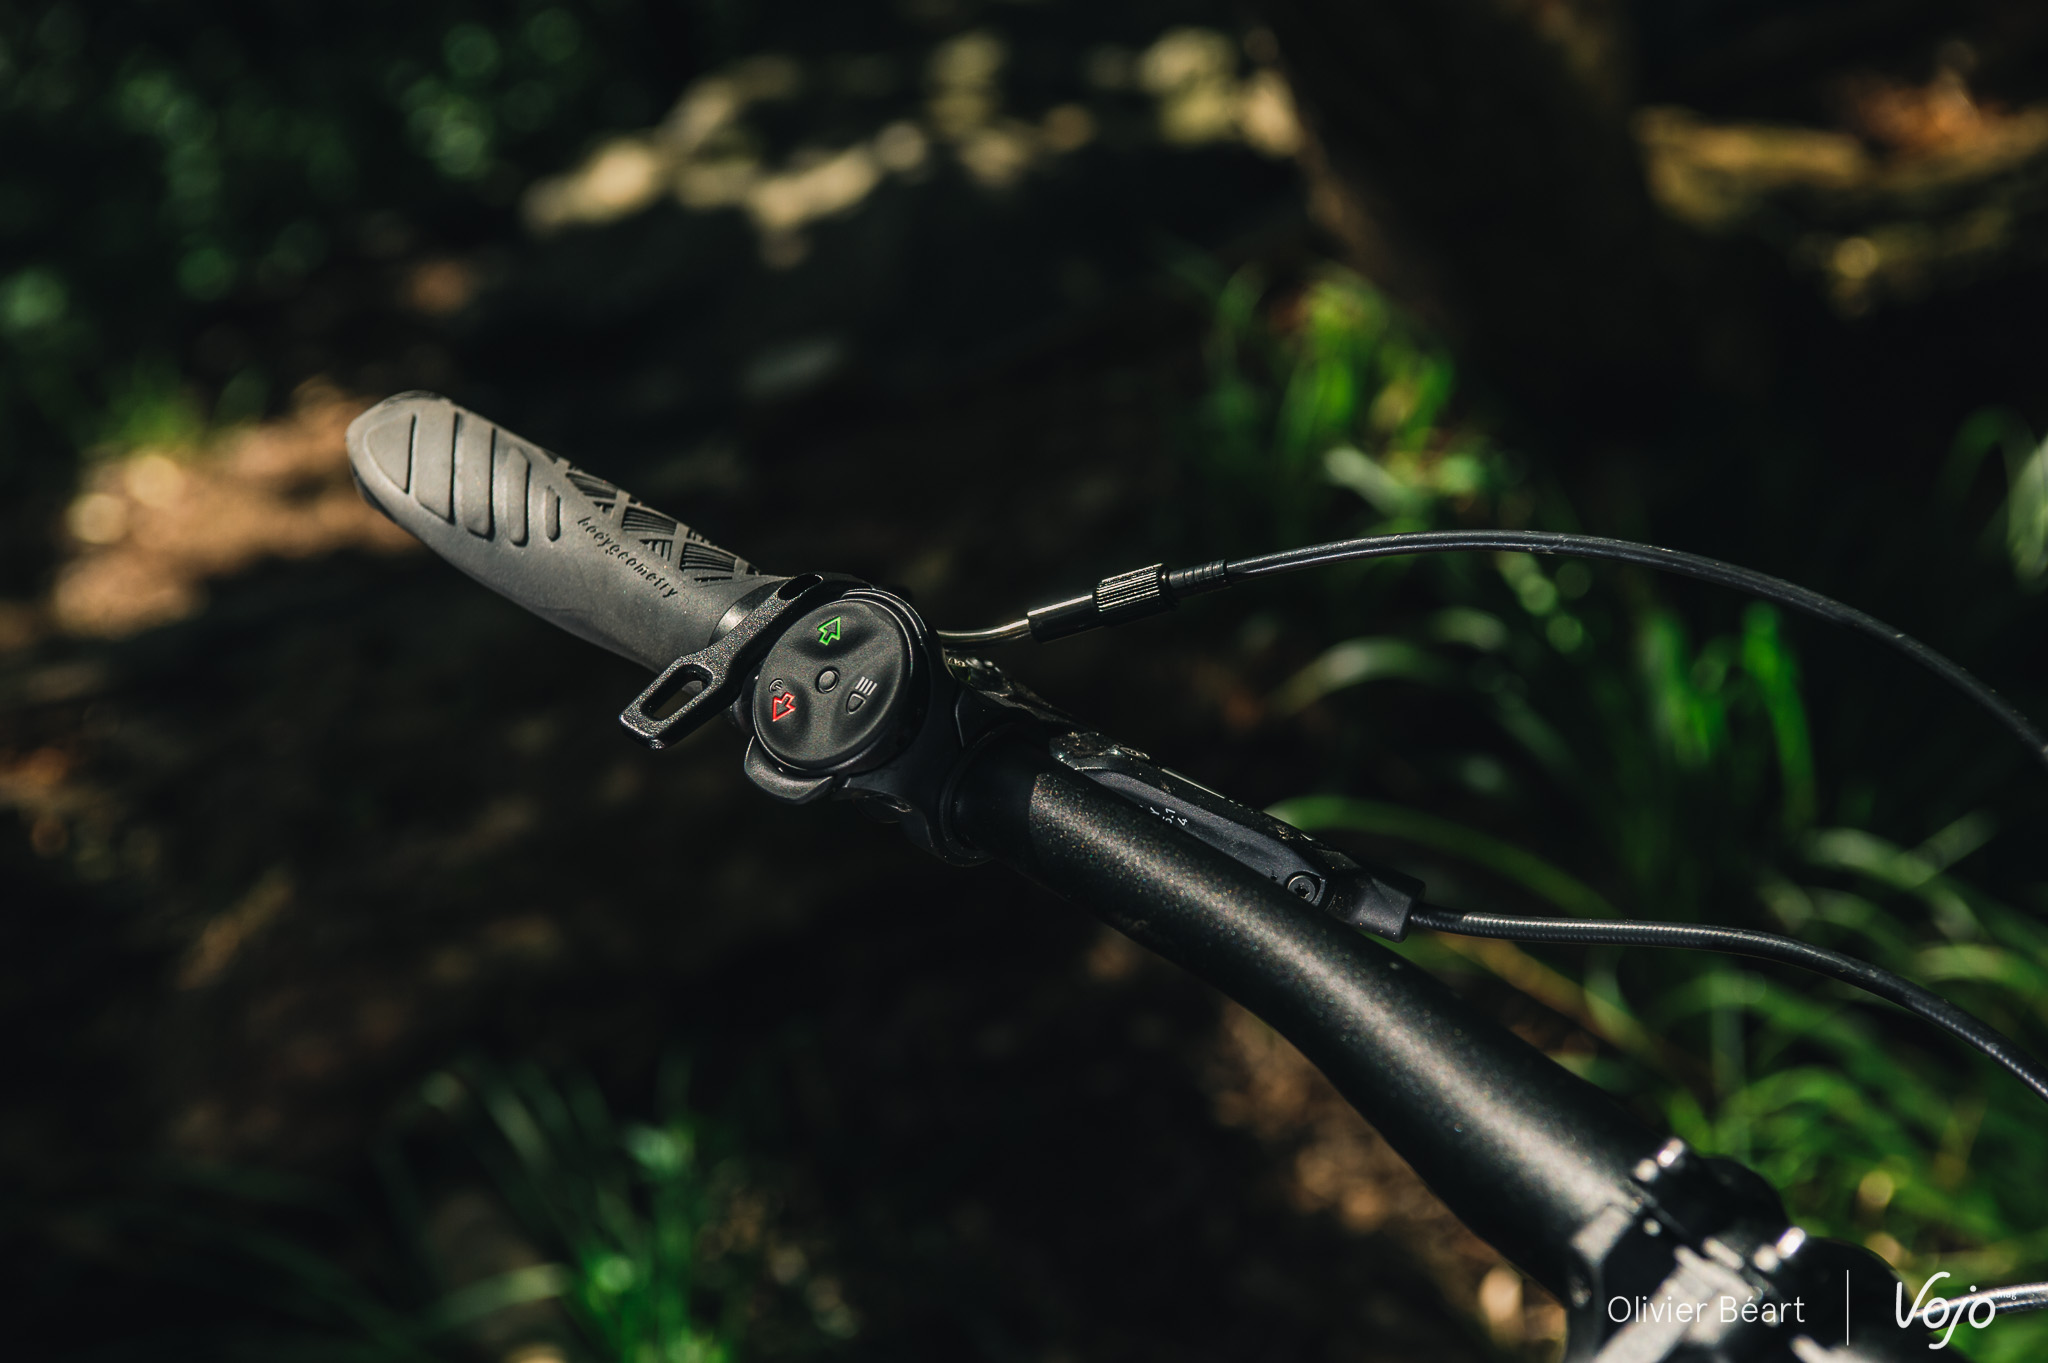 specialized_levo_ht_test_details_copyright_obeart_vojomag-3